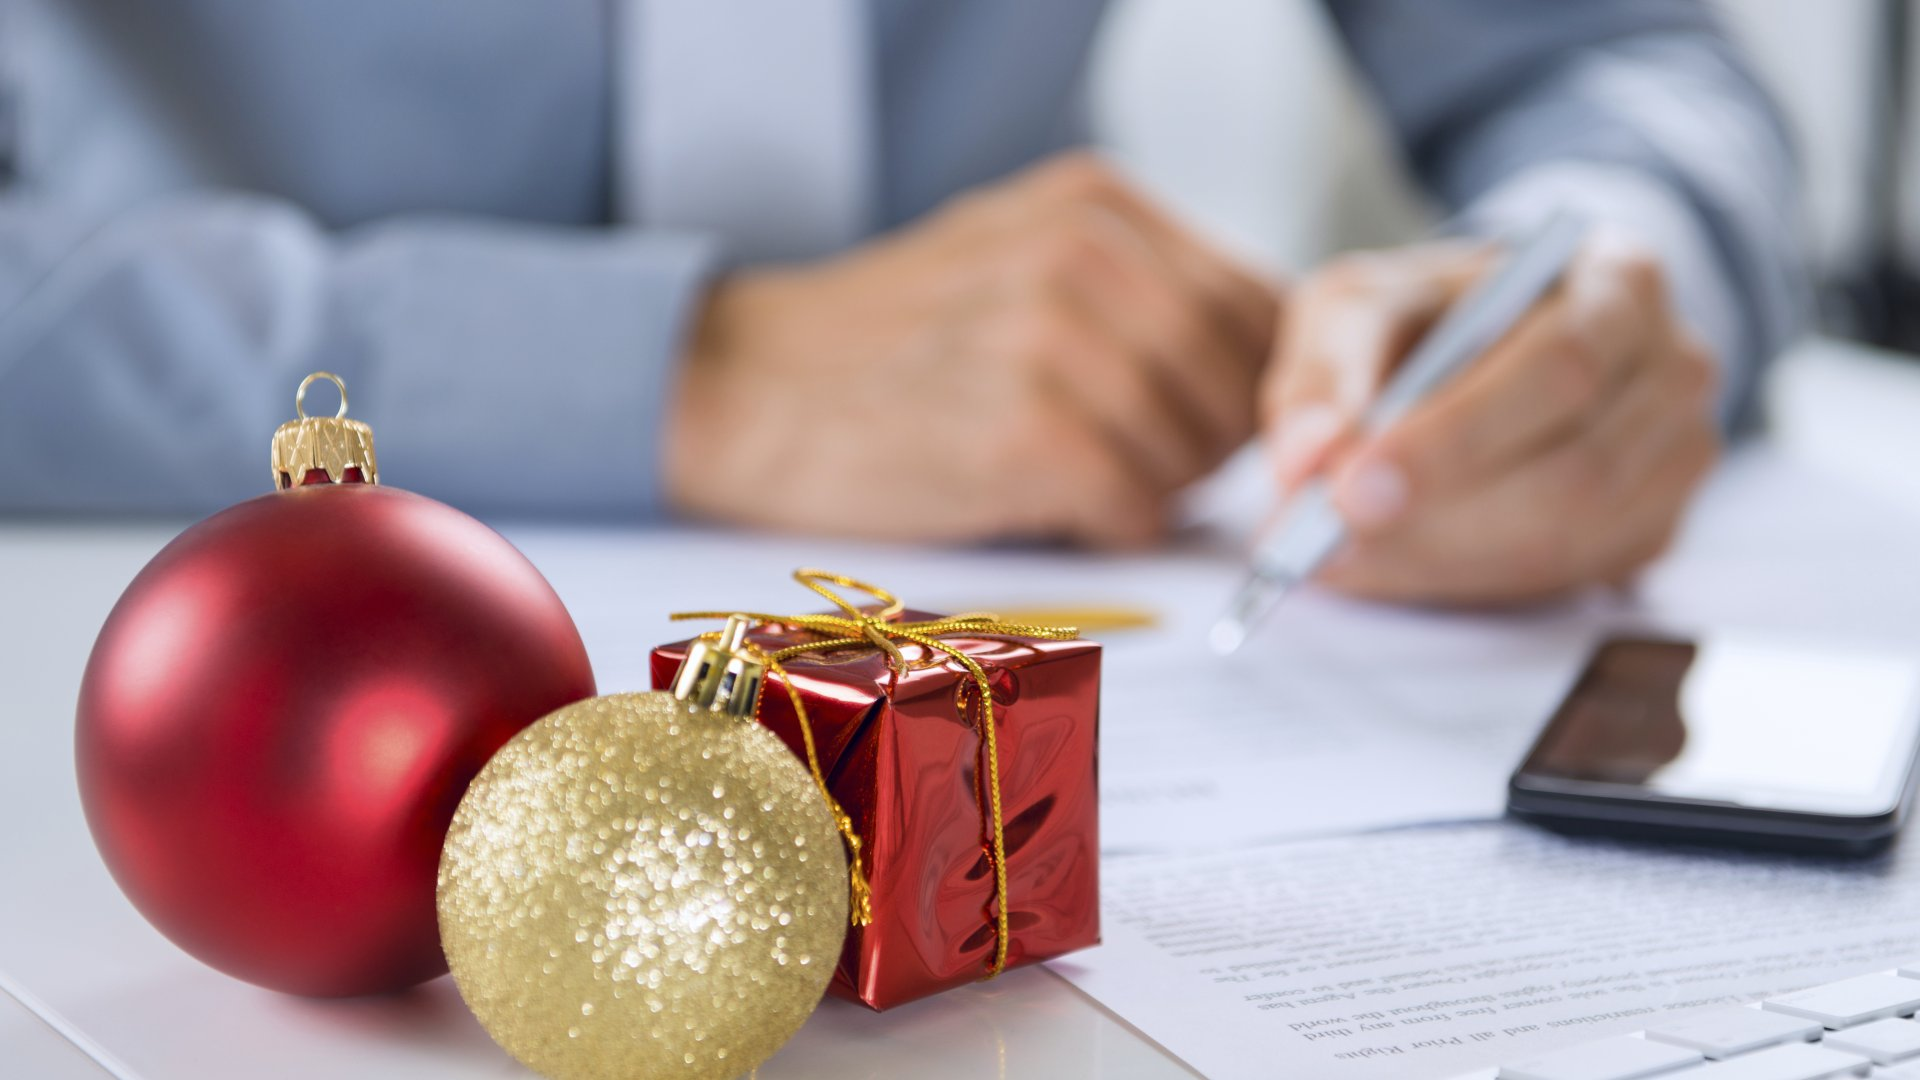 3 Things to Consider Before Forcing Your Employees to Work the Holidays